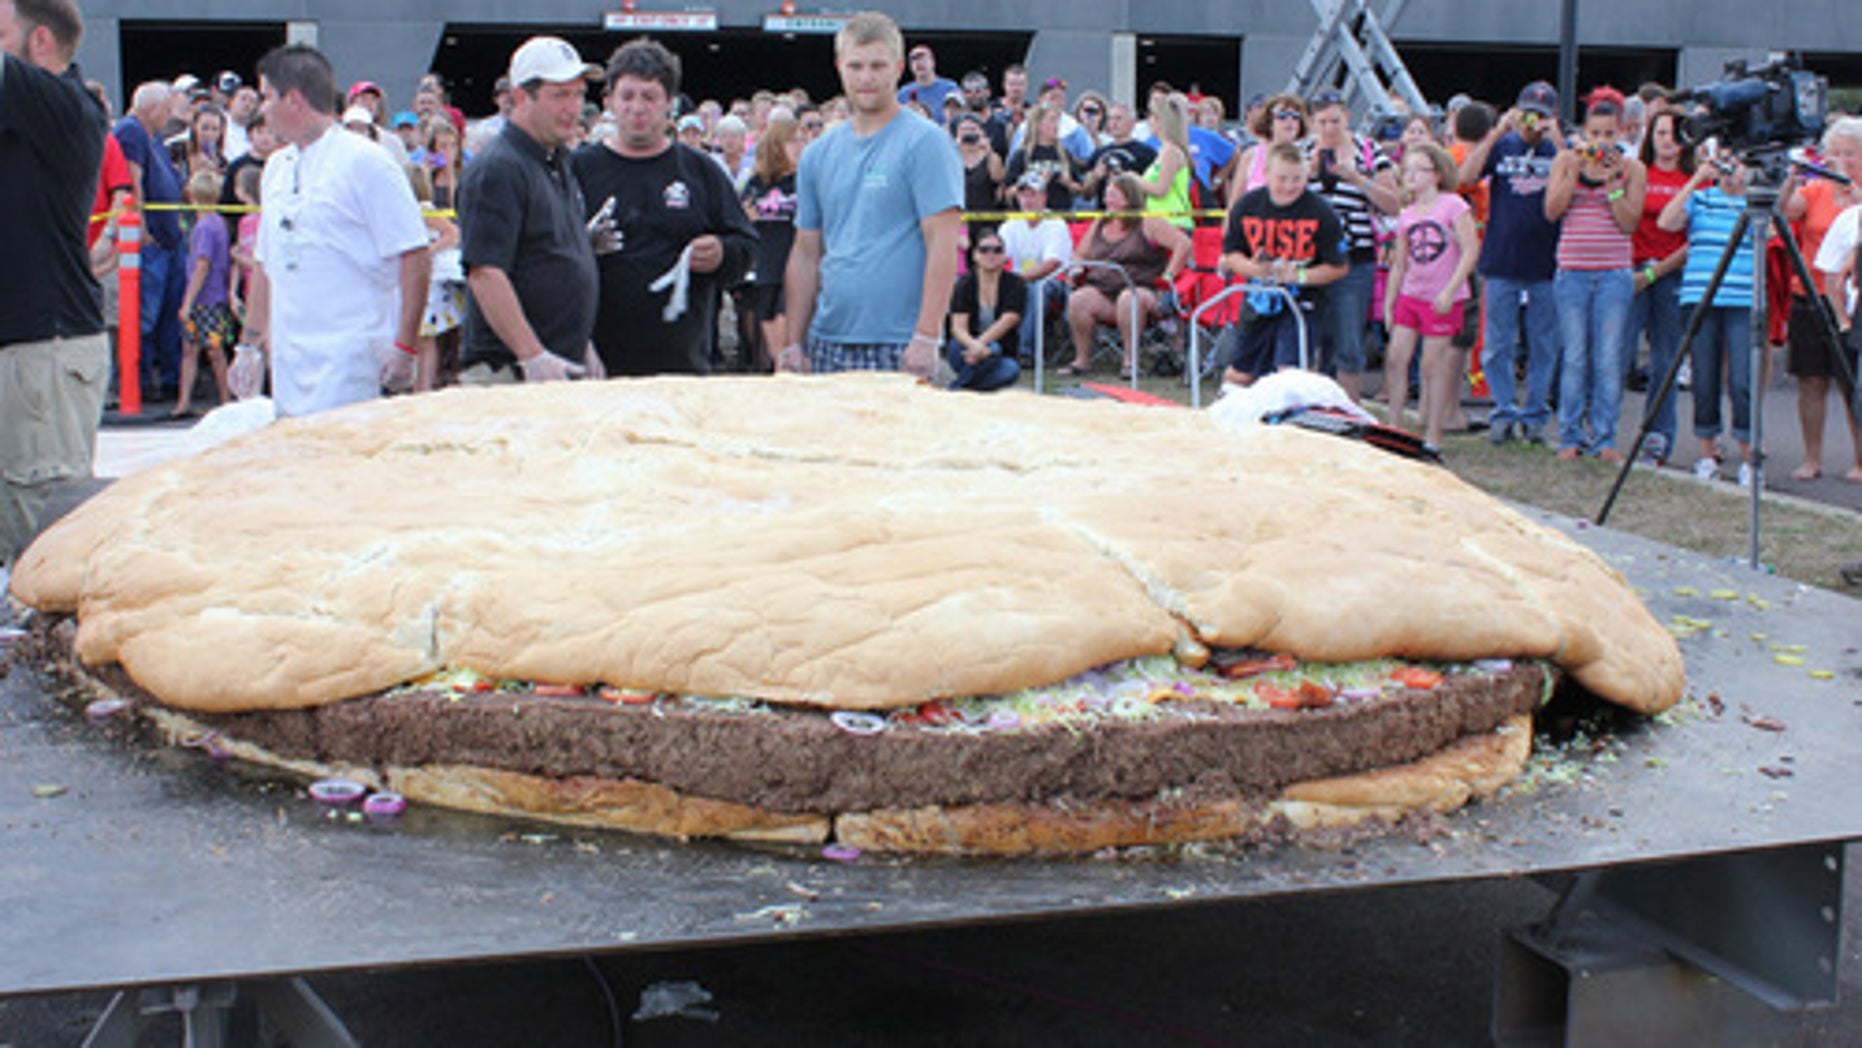 Sept. 2, 2012: People examine a bacon cheeseburger measuring 10 feet in diameter and weighing 2,014 pounds at Black Bear Casino Resort near Carlton, Minn.